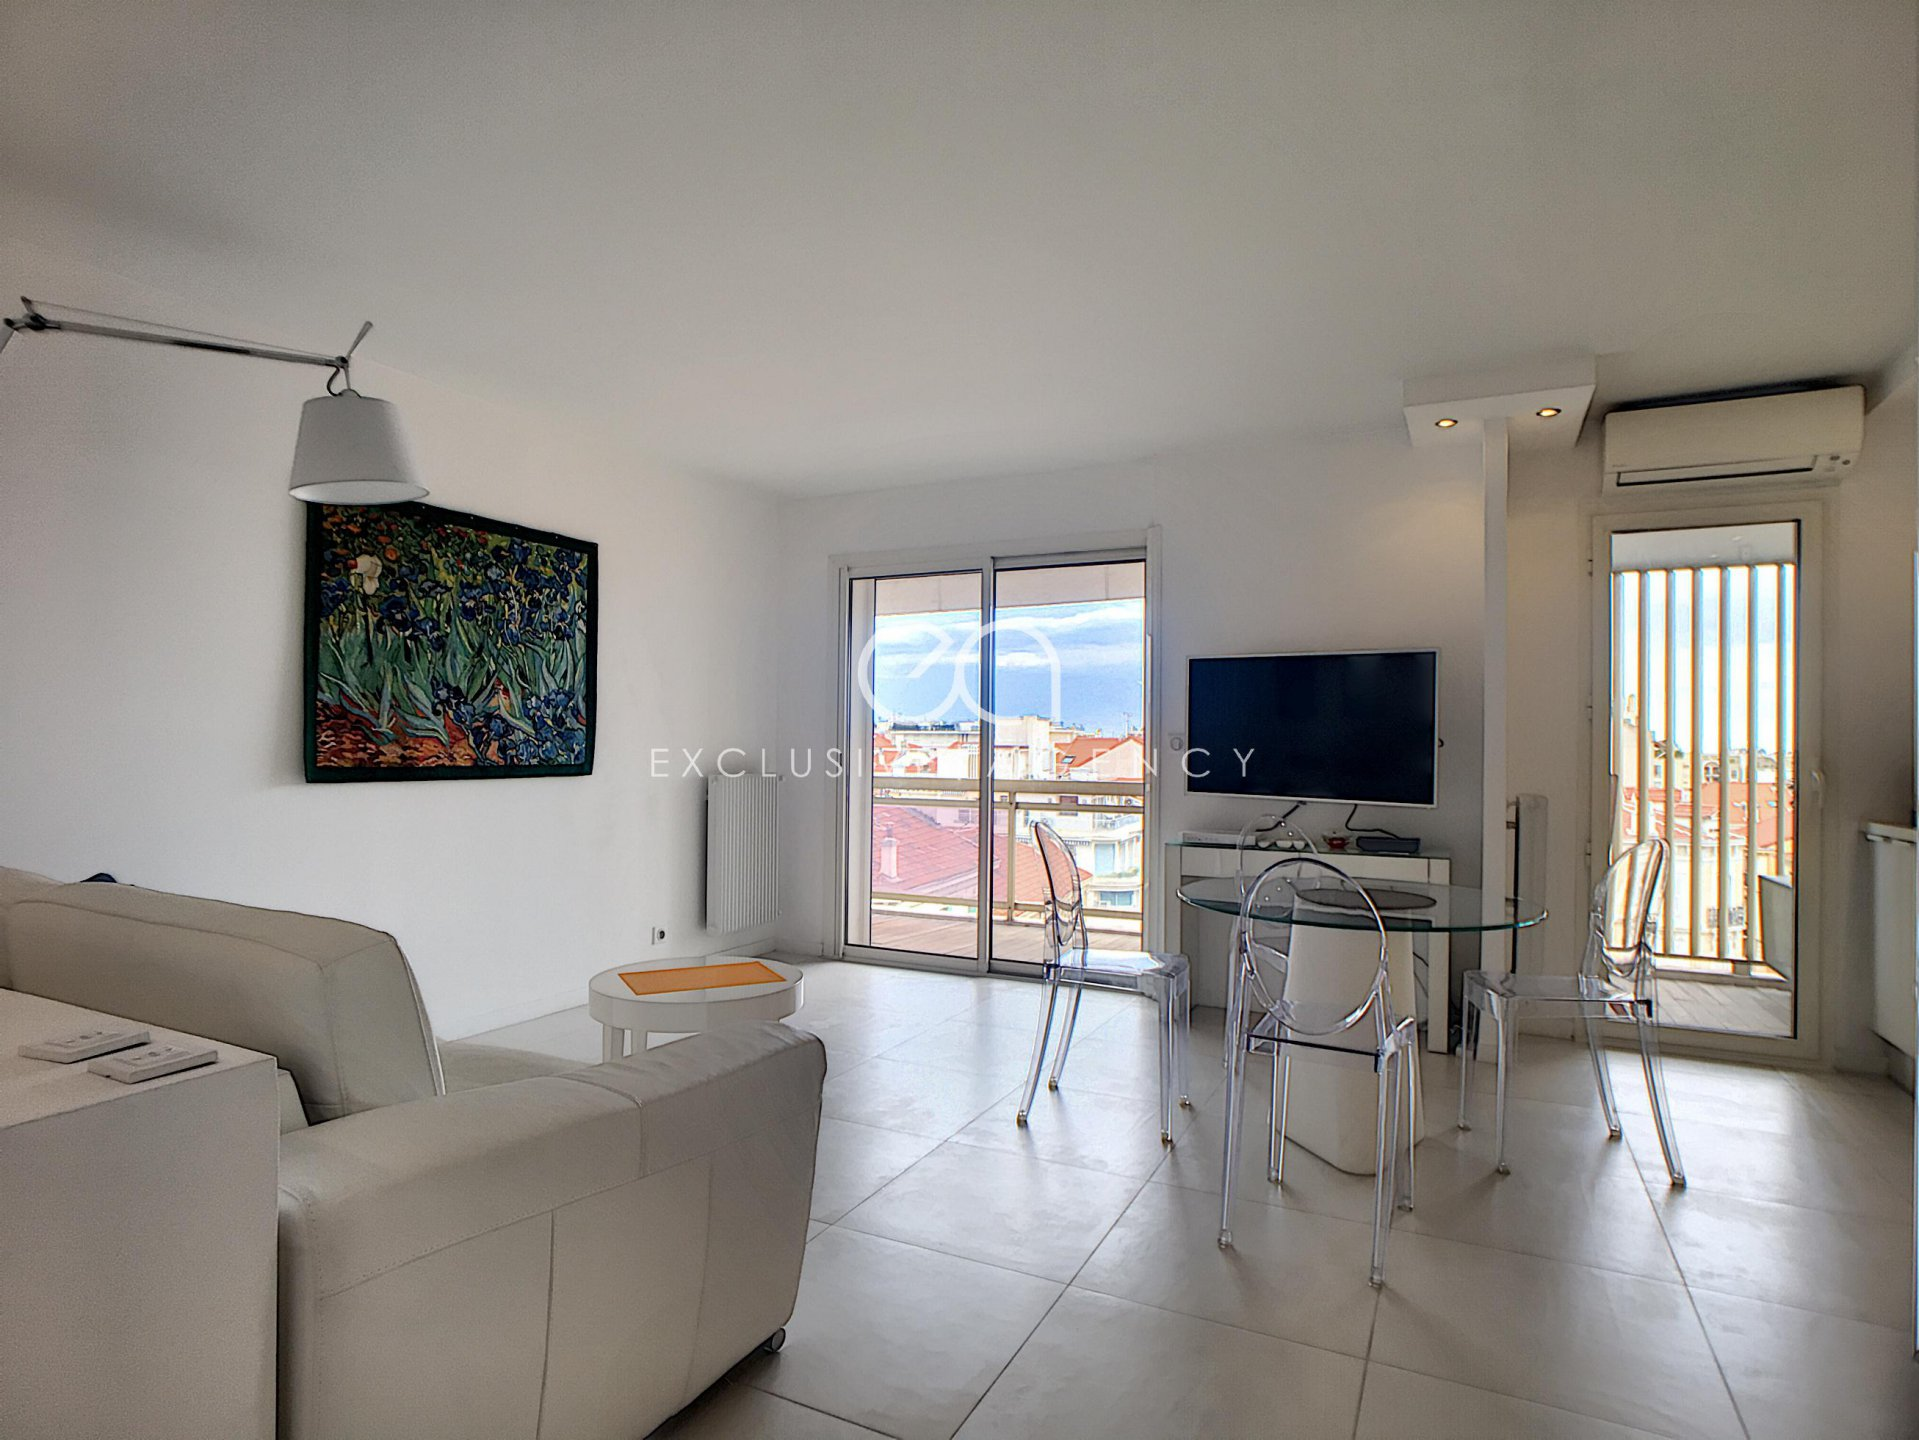 Cannes City Center rental for congress or holiday 50m² 1 bedroom apartment.